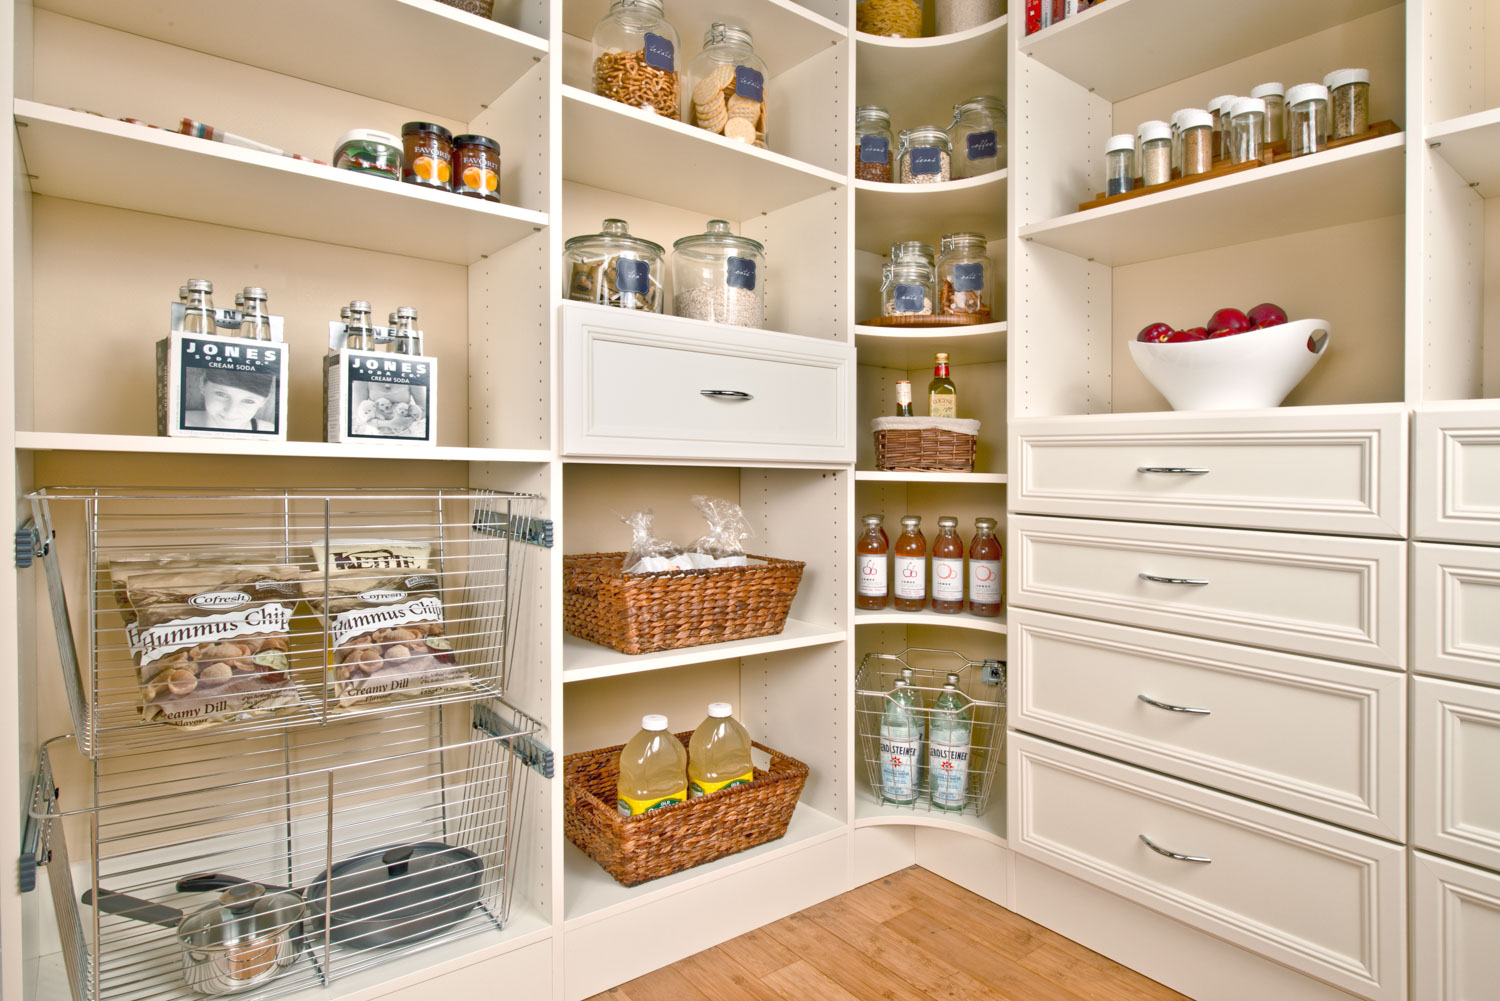 kitchen pantry shelving systems las vegas hotels with kitchens in rooms organized living inspiration view full gallery 12 more